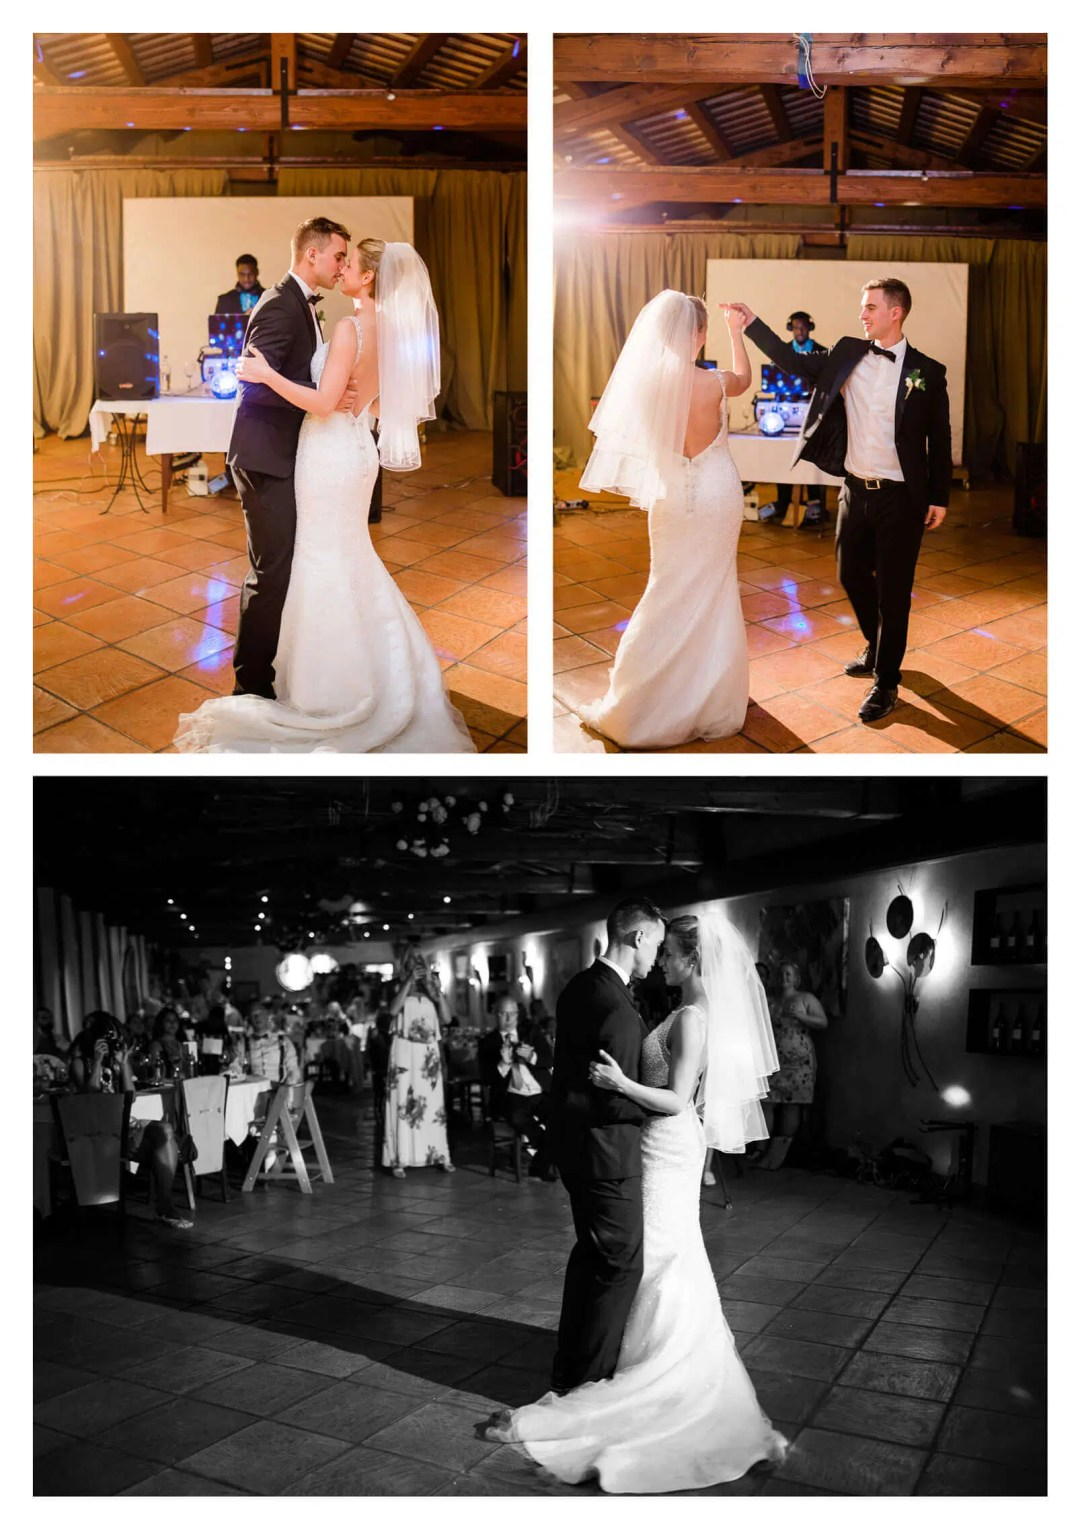 First dance Fossa Mala vineyard wedding venue | Pordenone Destination photographer